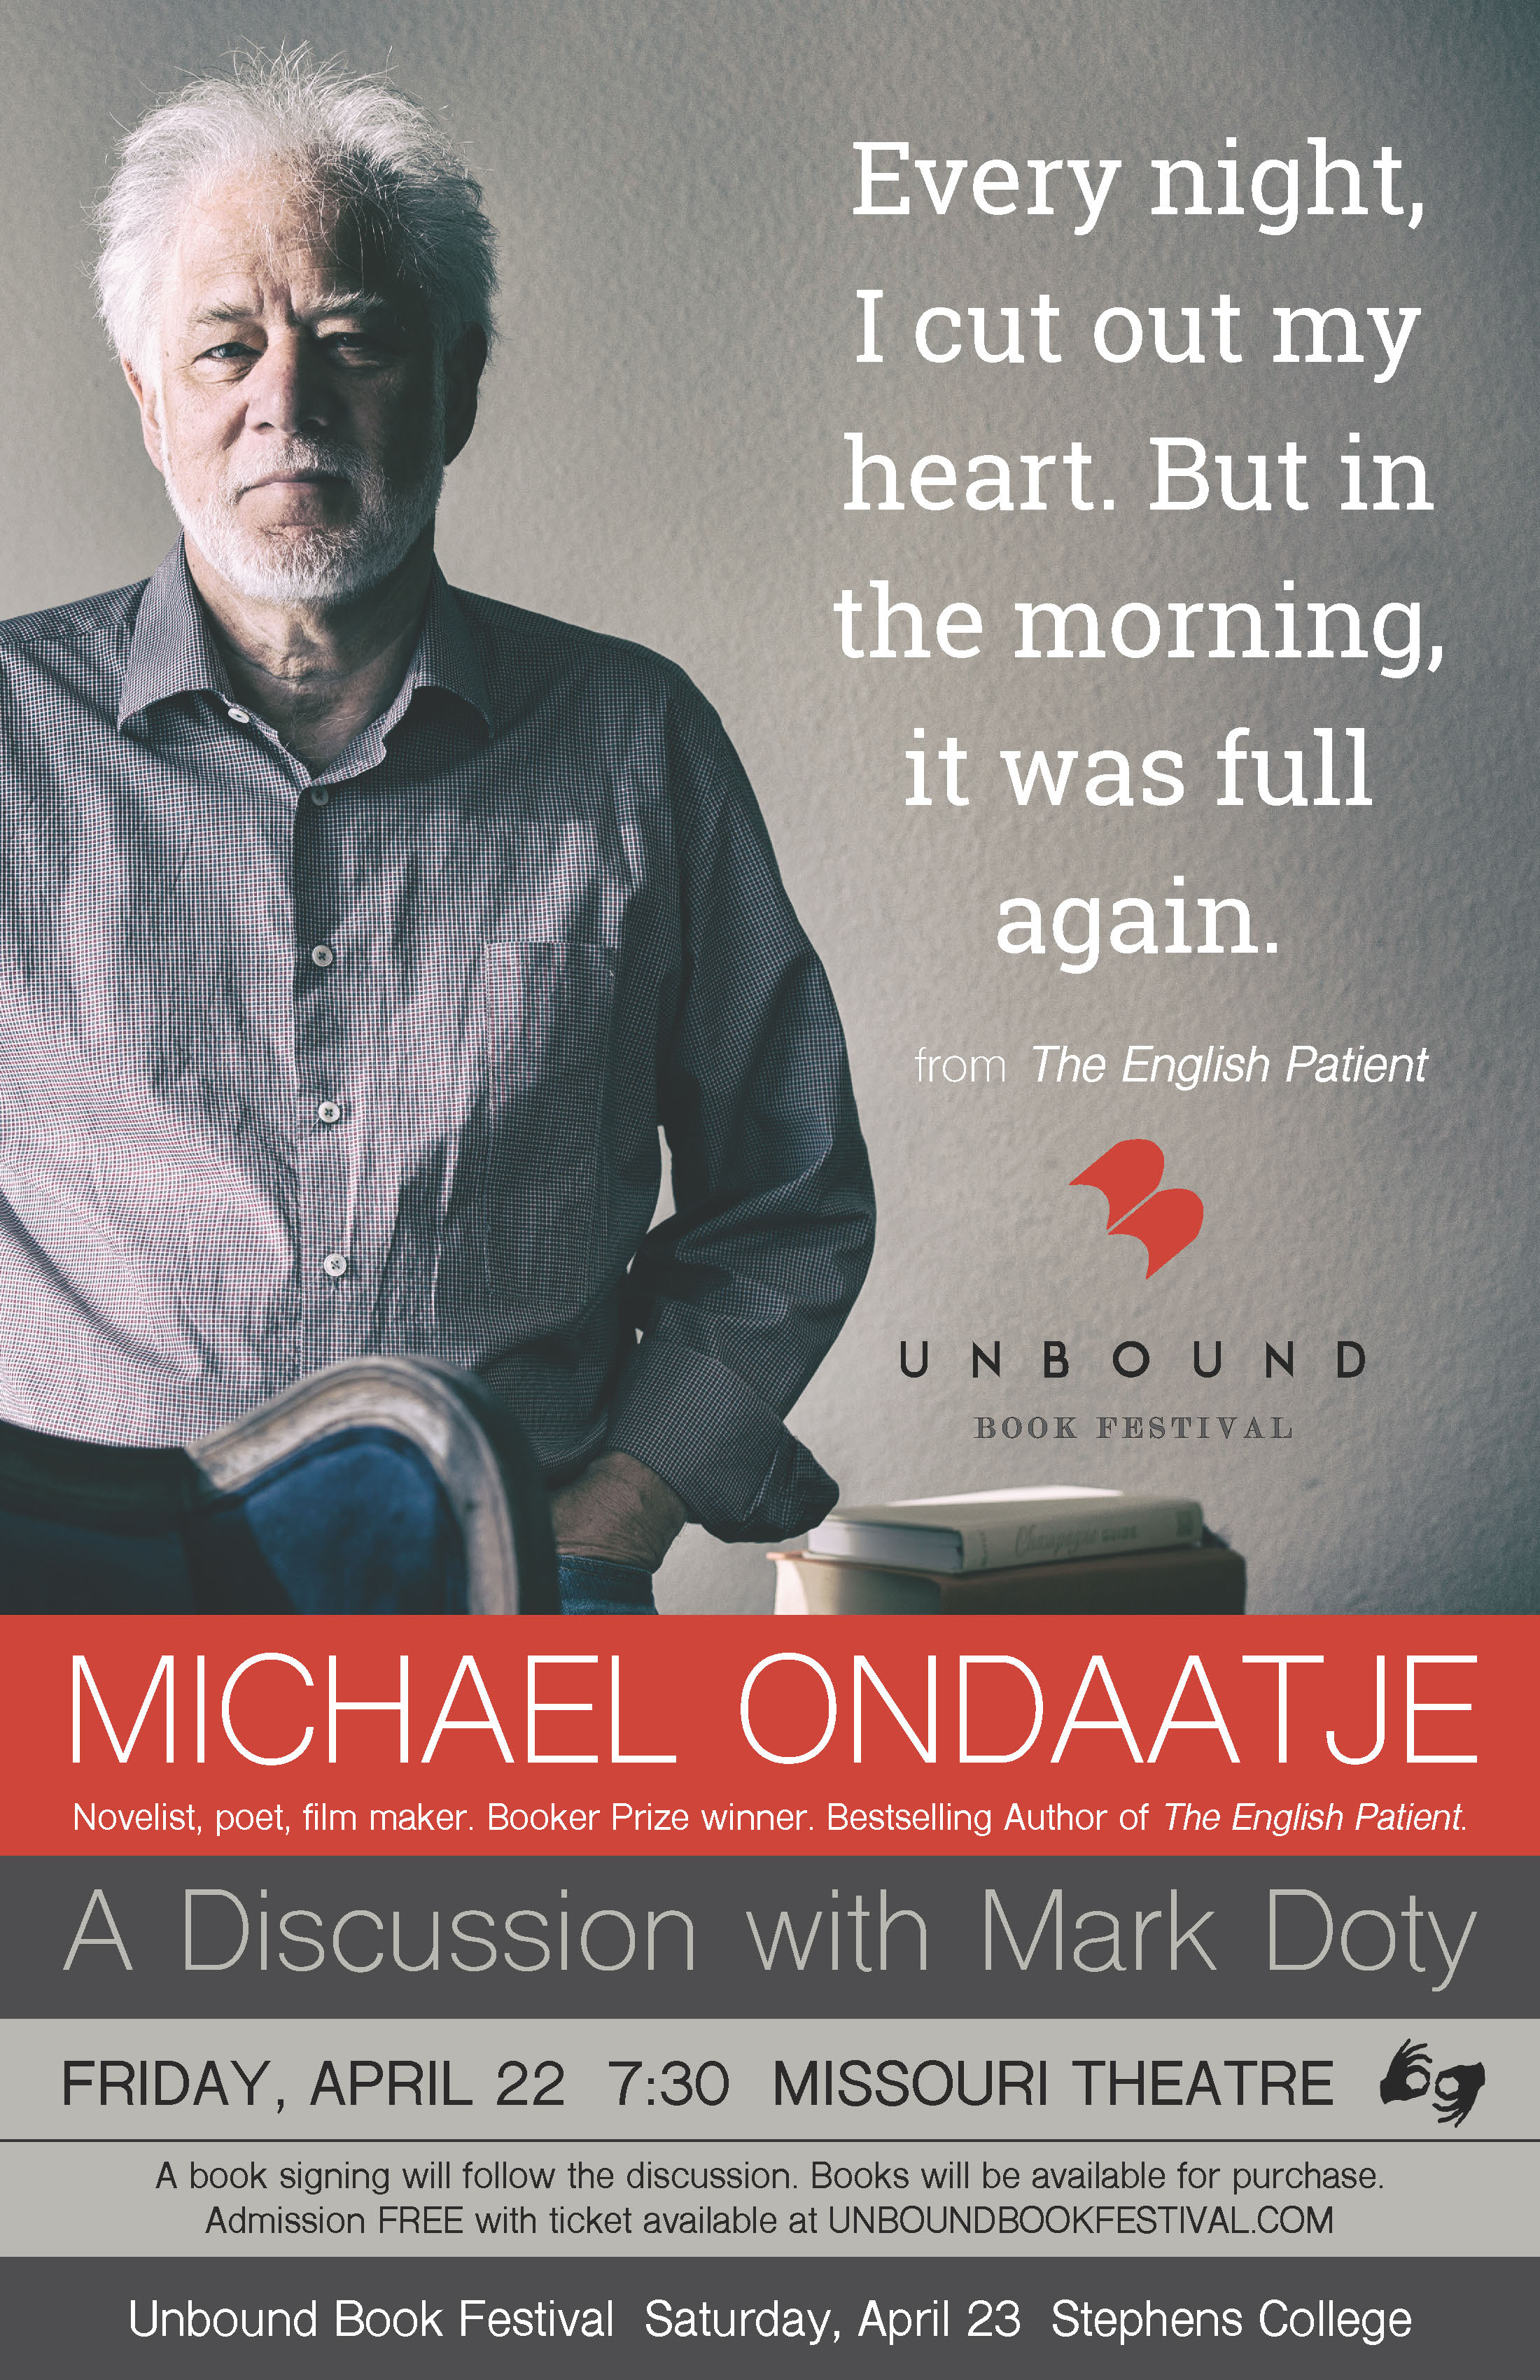 Unbound Book Festival Poster with Michael Ondaatje